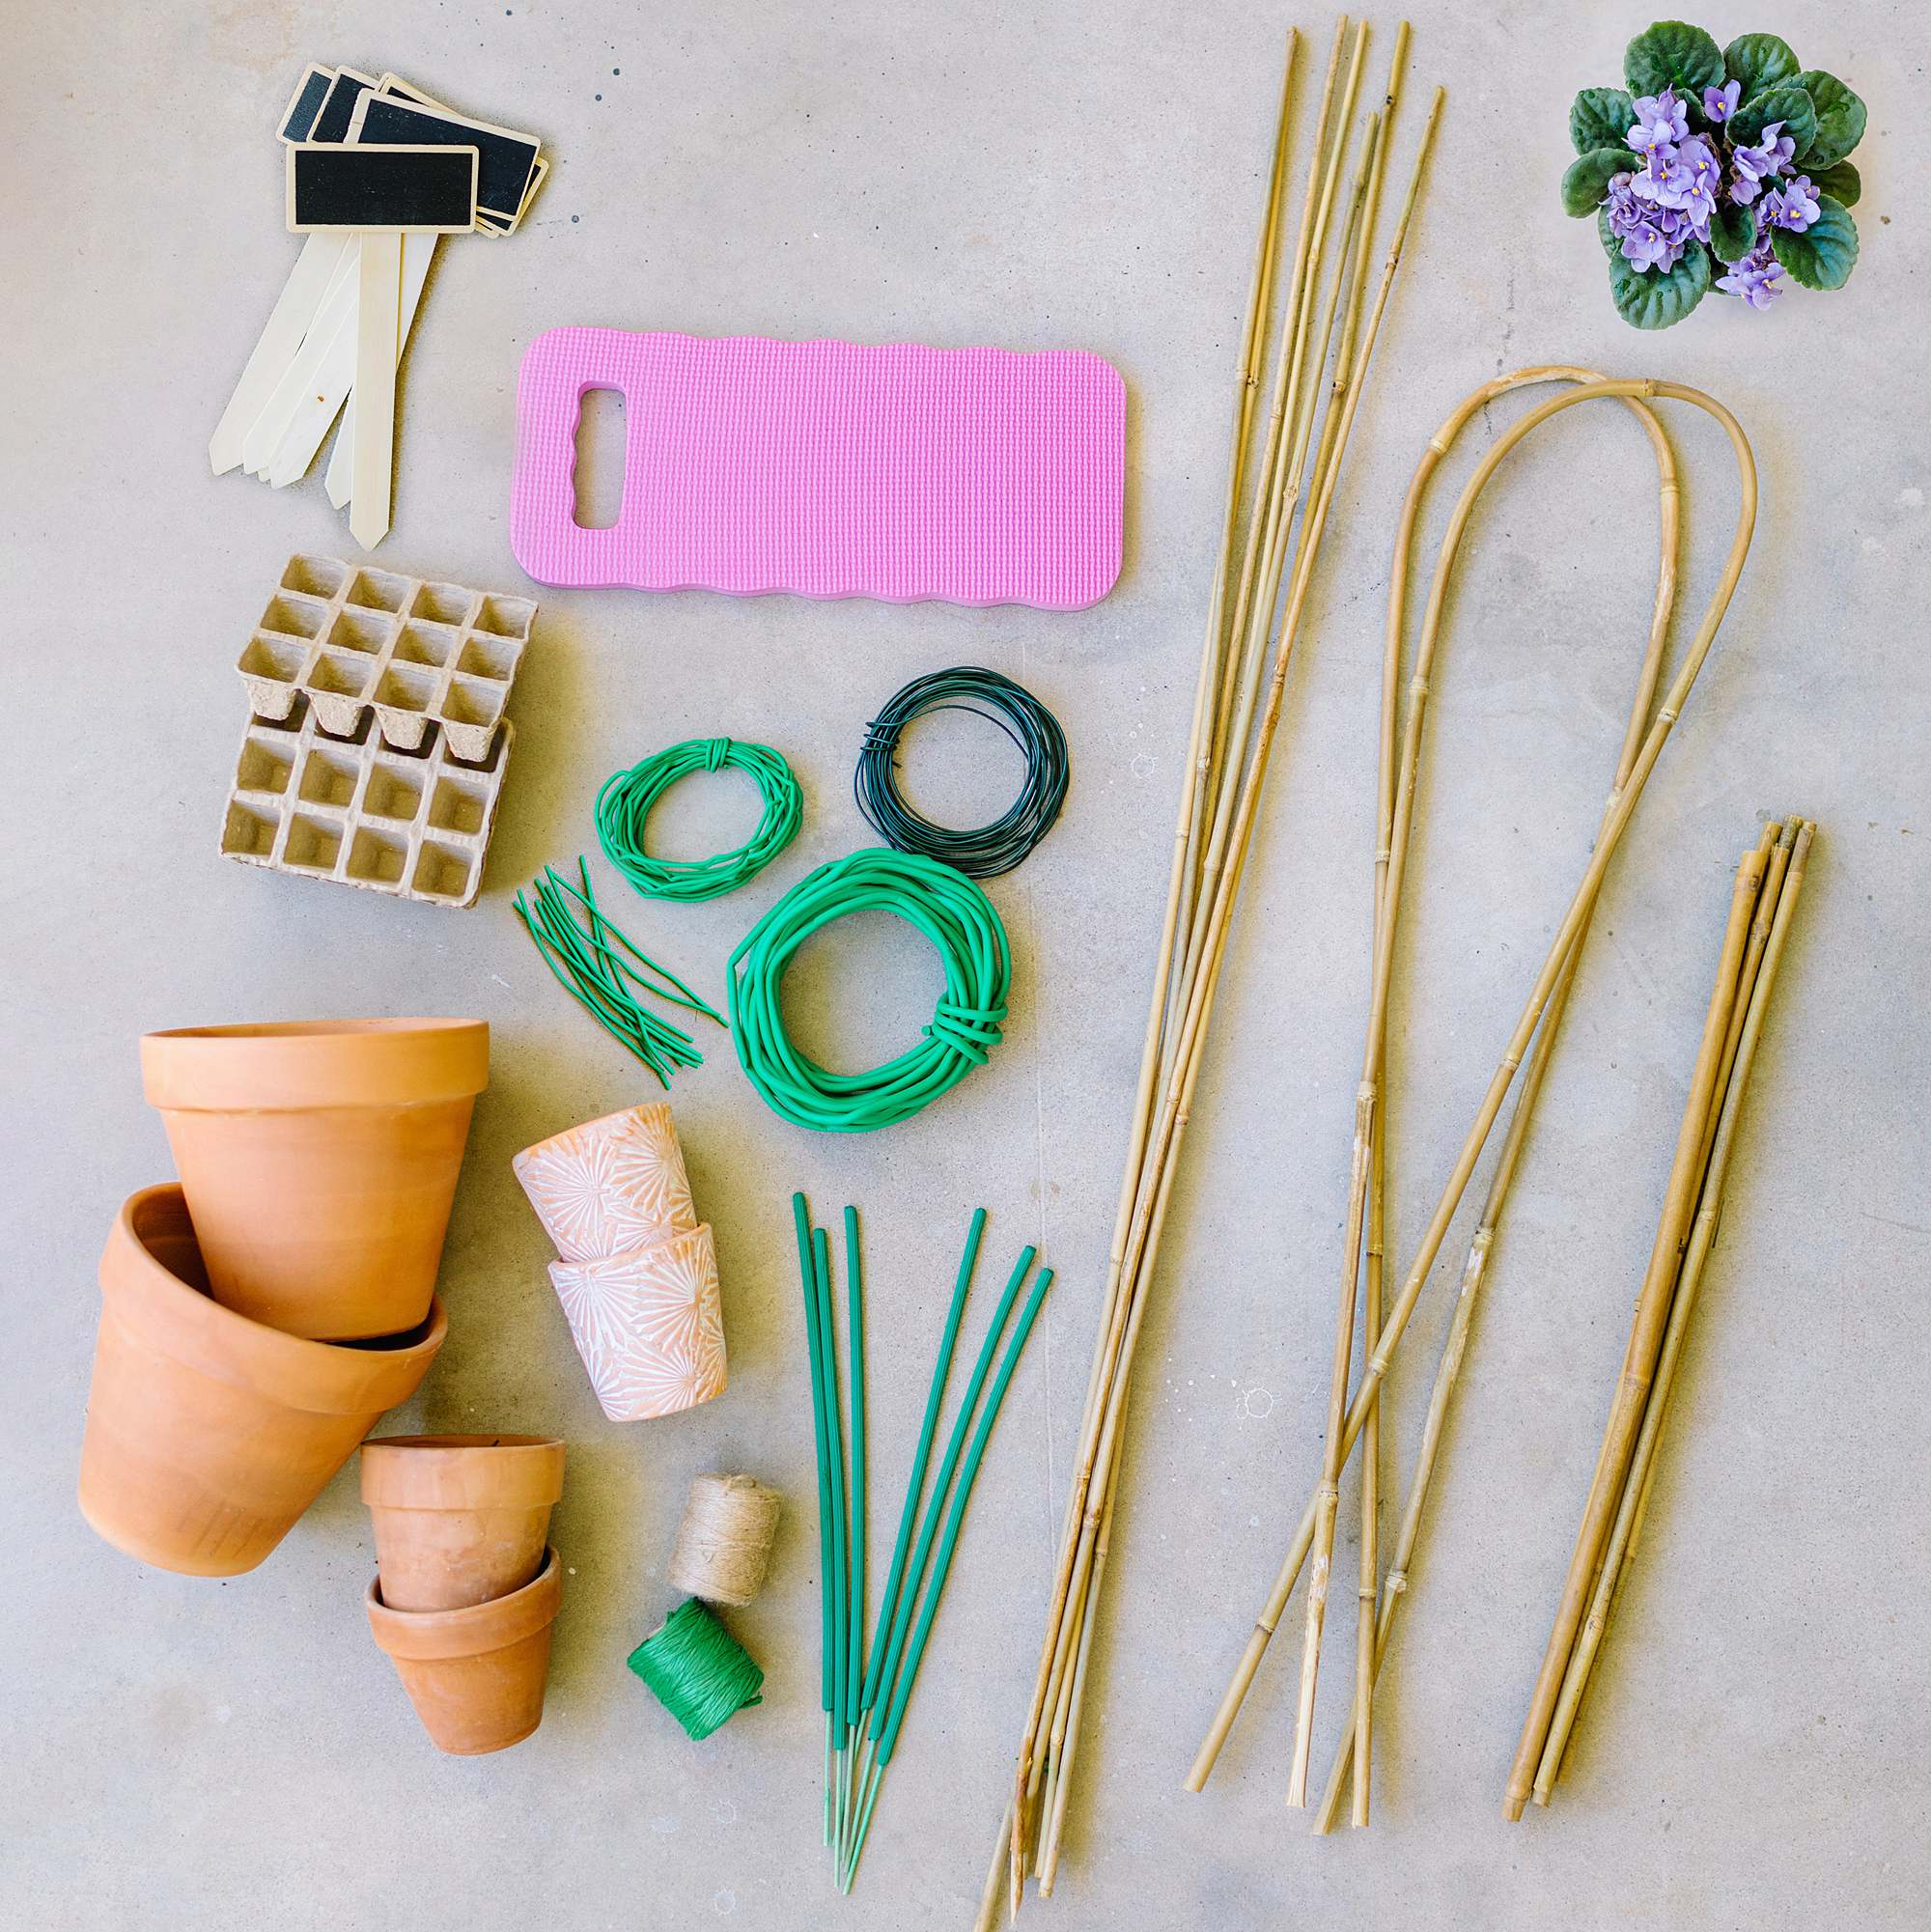 8 must-have gardening tools found at the 99 cents store - flat lay images of cheap gardening tools for under $1 - knee pad, paper pot, bamboo stakes, terra cotta pots, plant markers, rubber coated wire, citronella sticks, twine, and save money so you can buy more plants! #gardeningtips